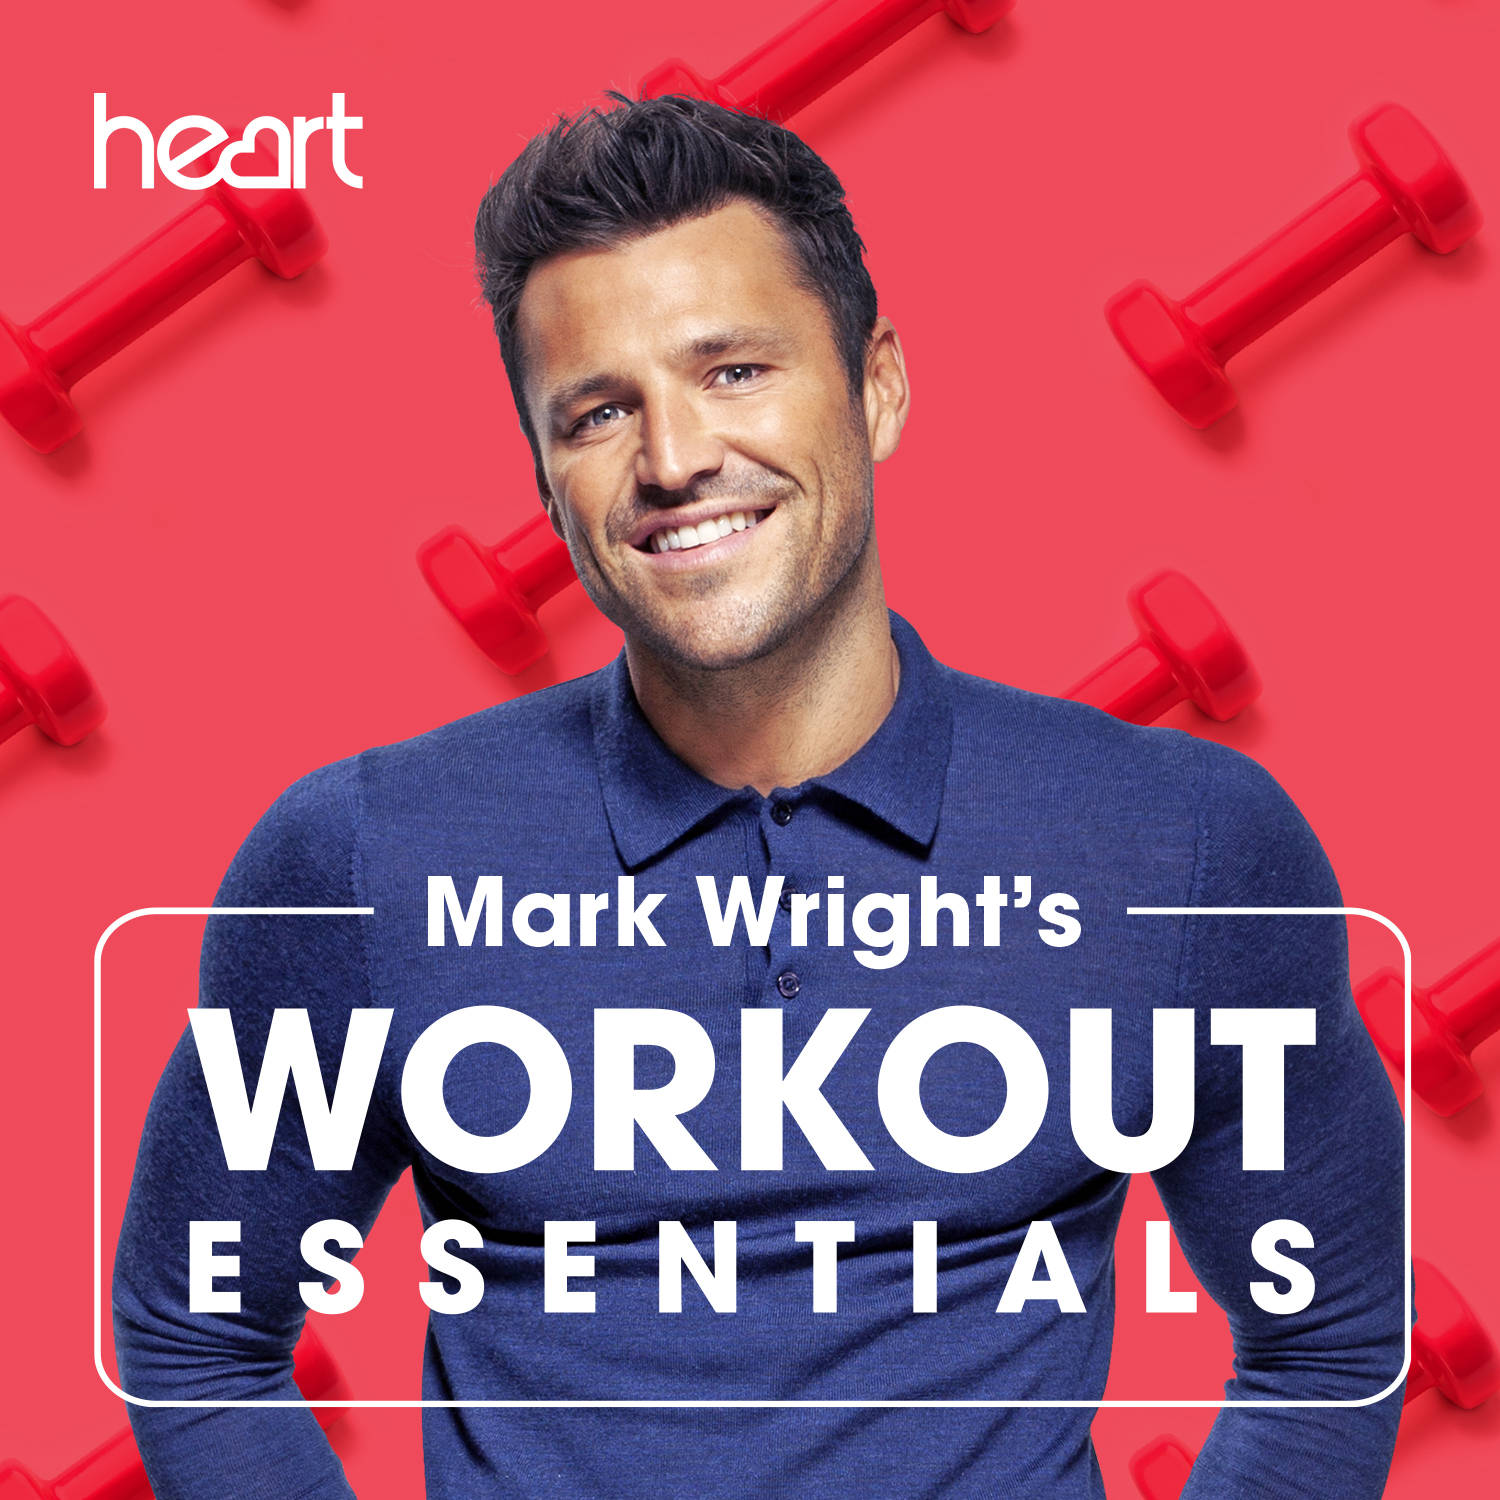 Mark Wright's Workout Essentials image